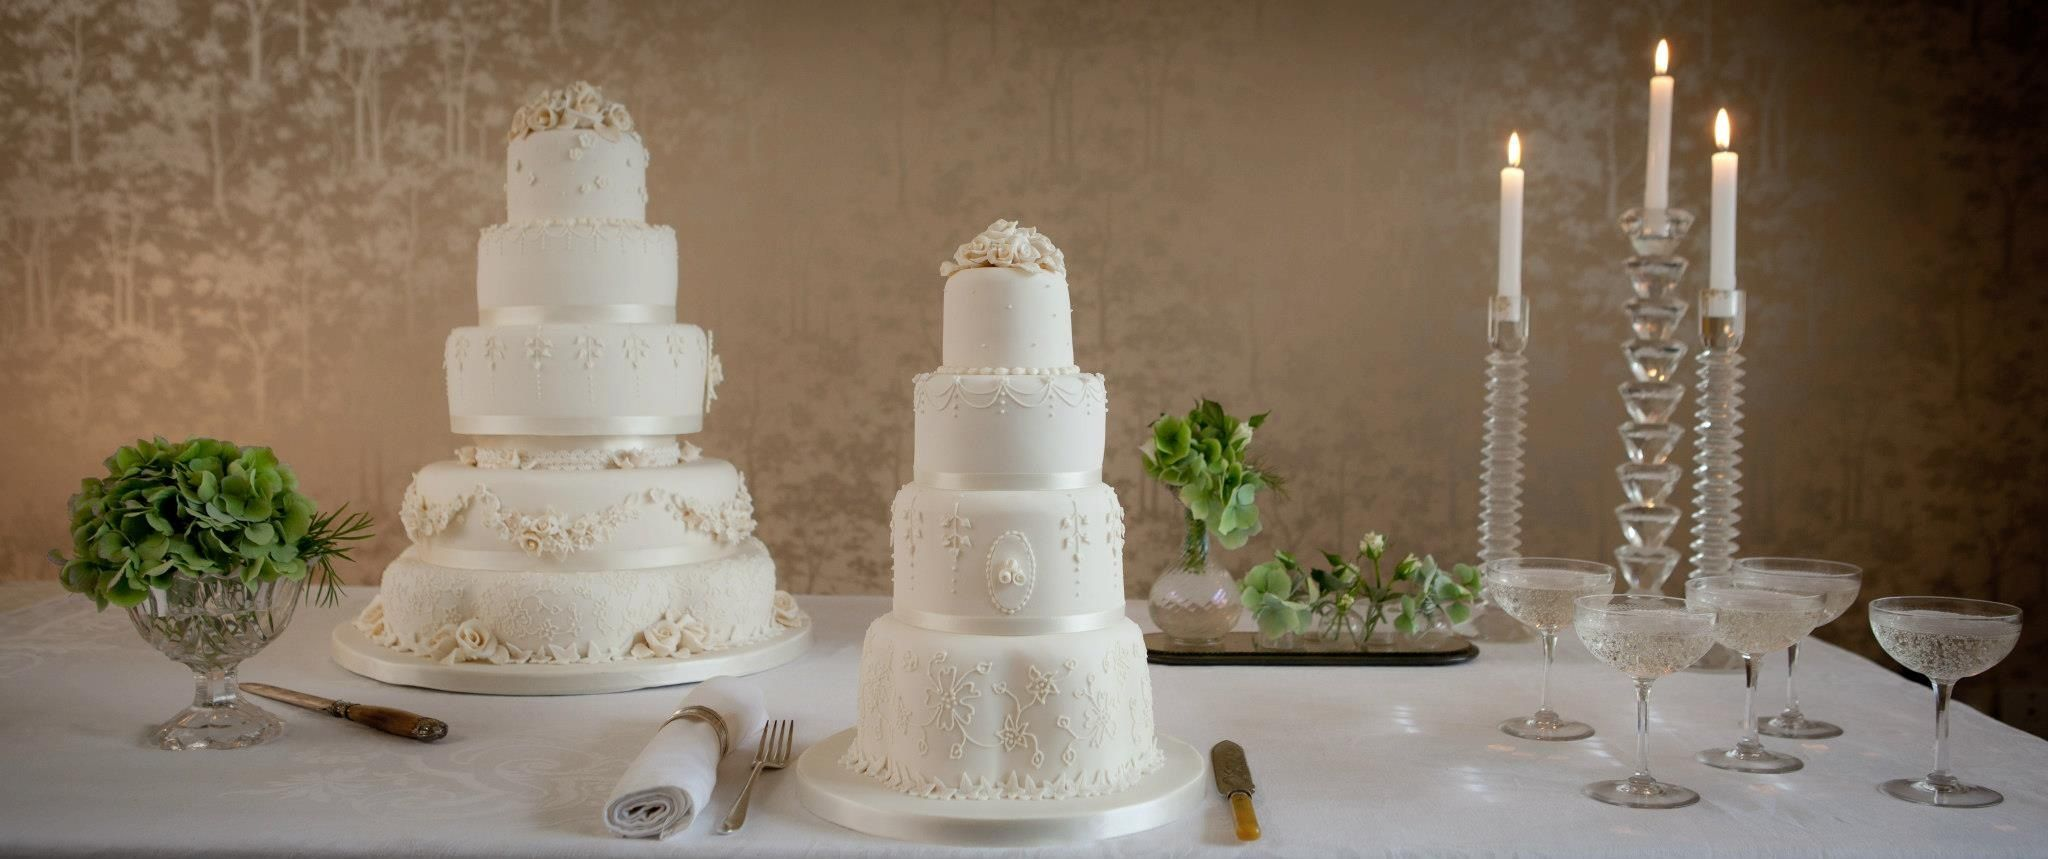 Fiona Cairns Make Luxury Cakes In The Heart Of Uk Our Bespoke Wedding Are Decorated House Style Clic With A Modern Twist